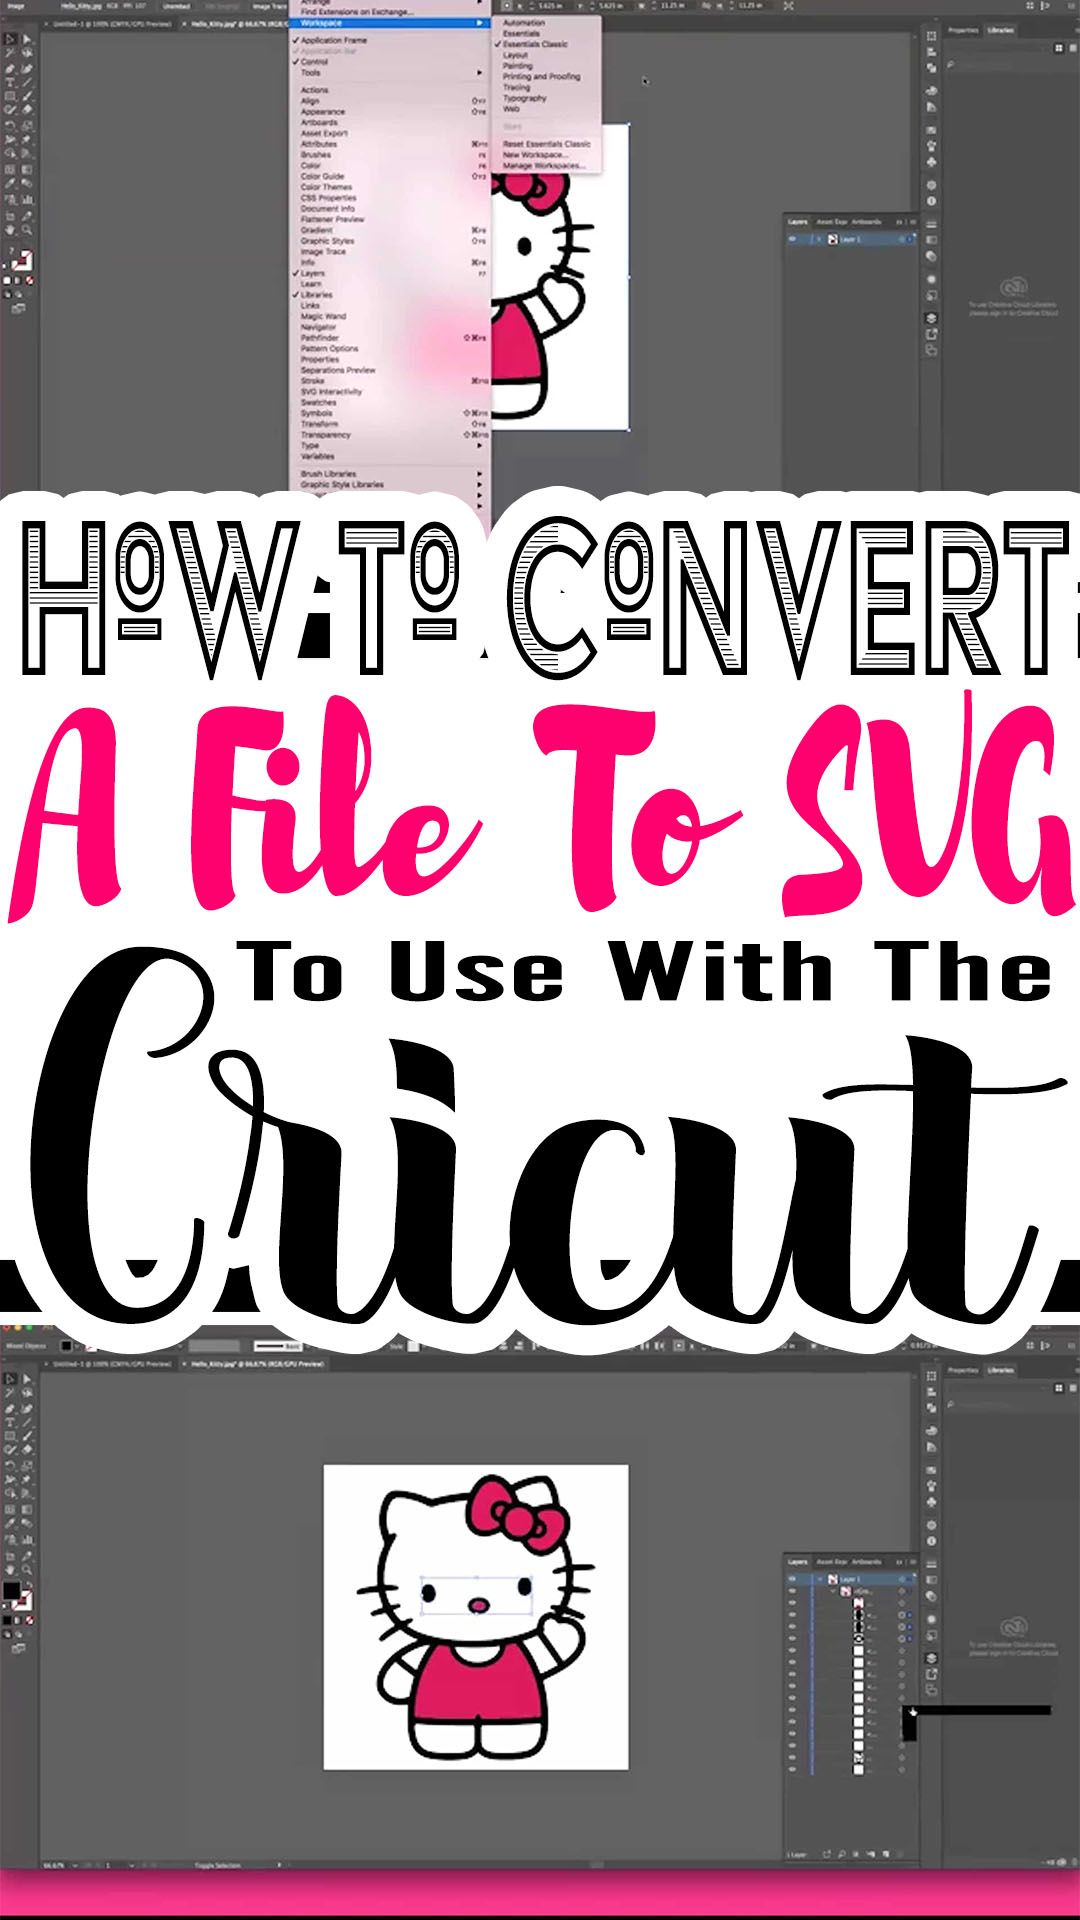 How To Convert An Image To SVG To Use With Cricut Design Space